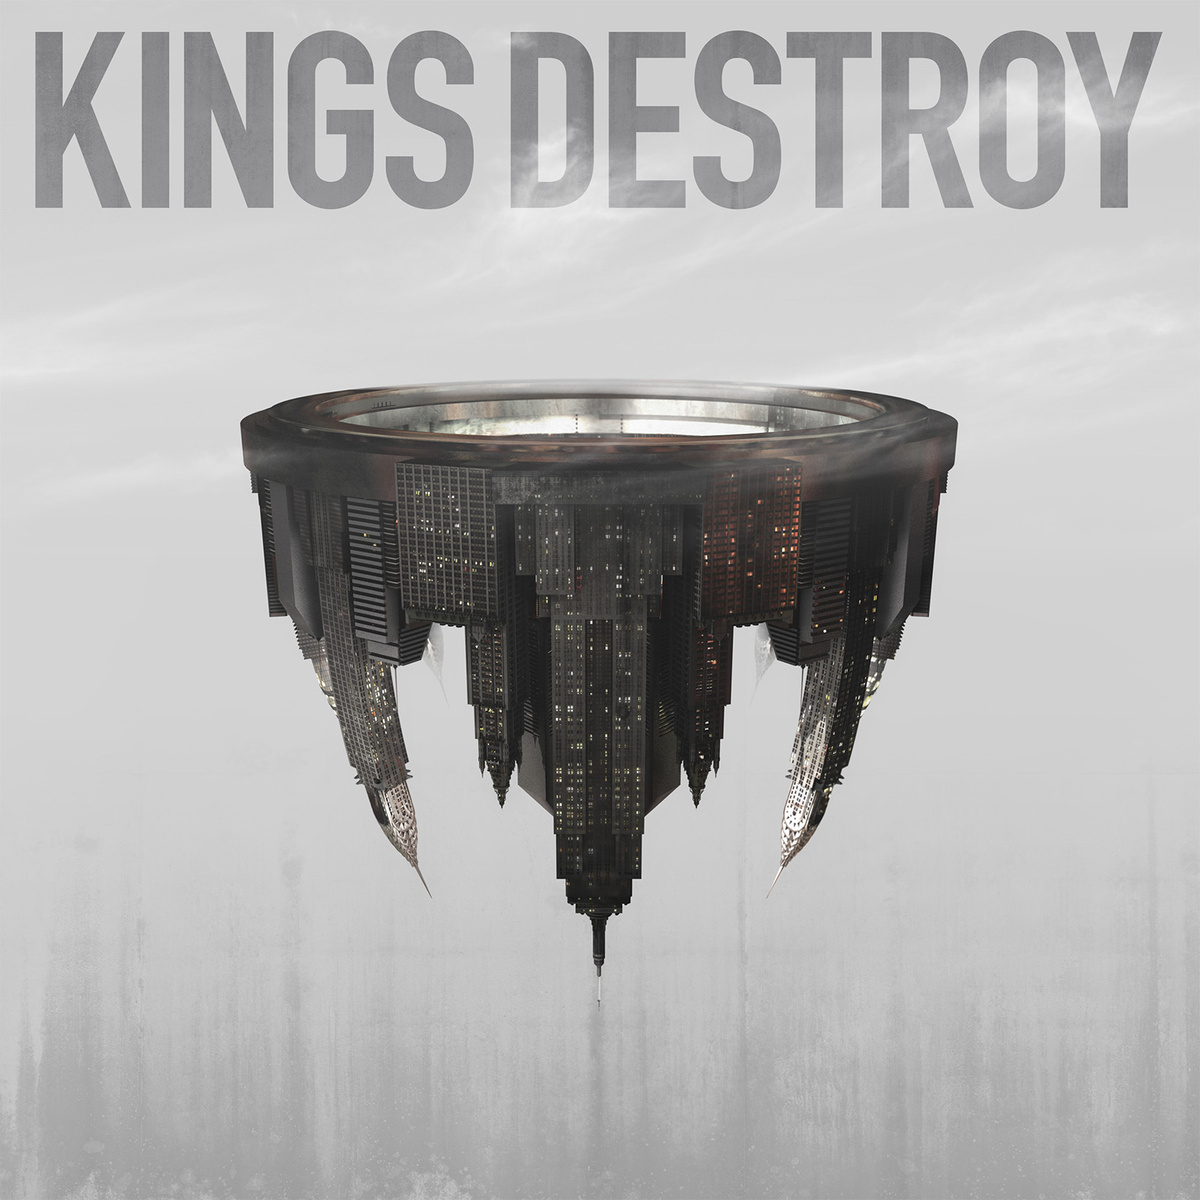 Kings-destroy-album